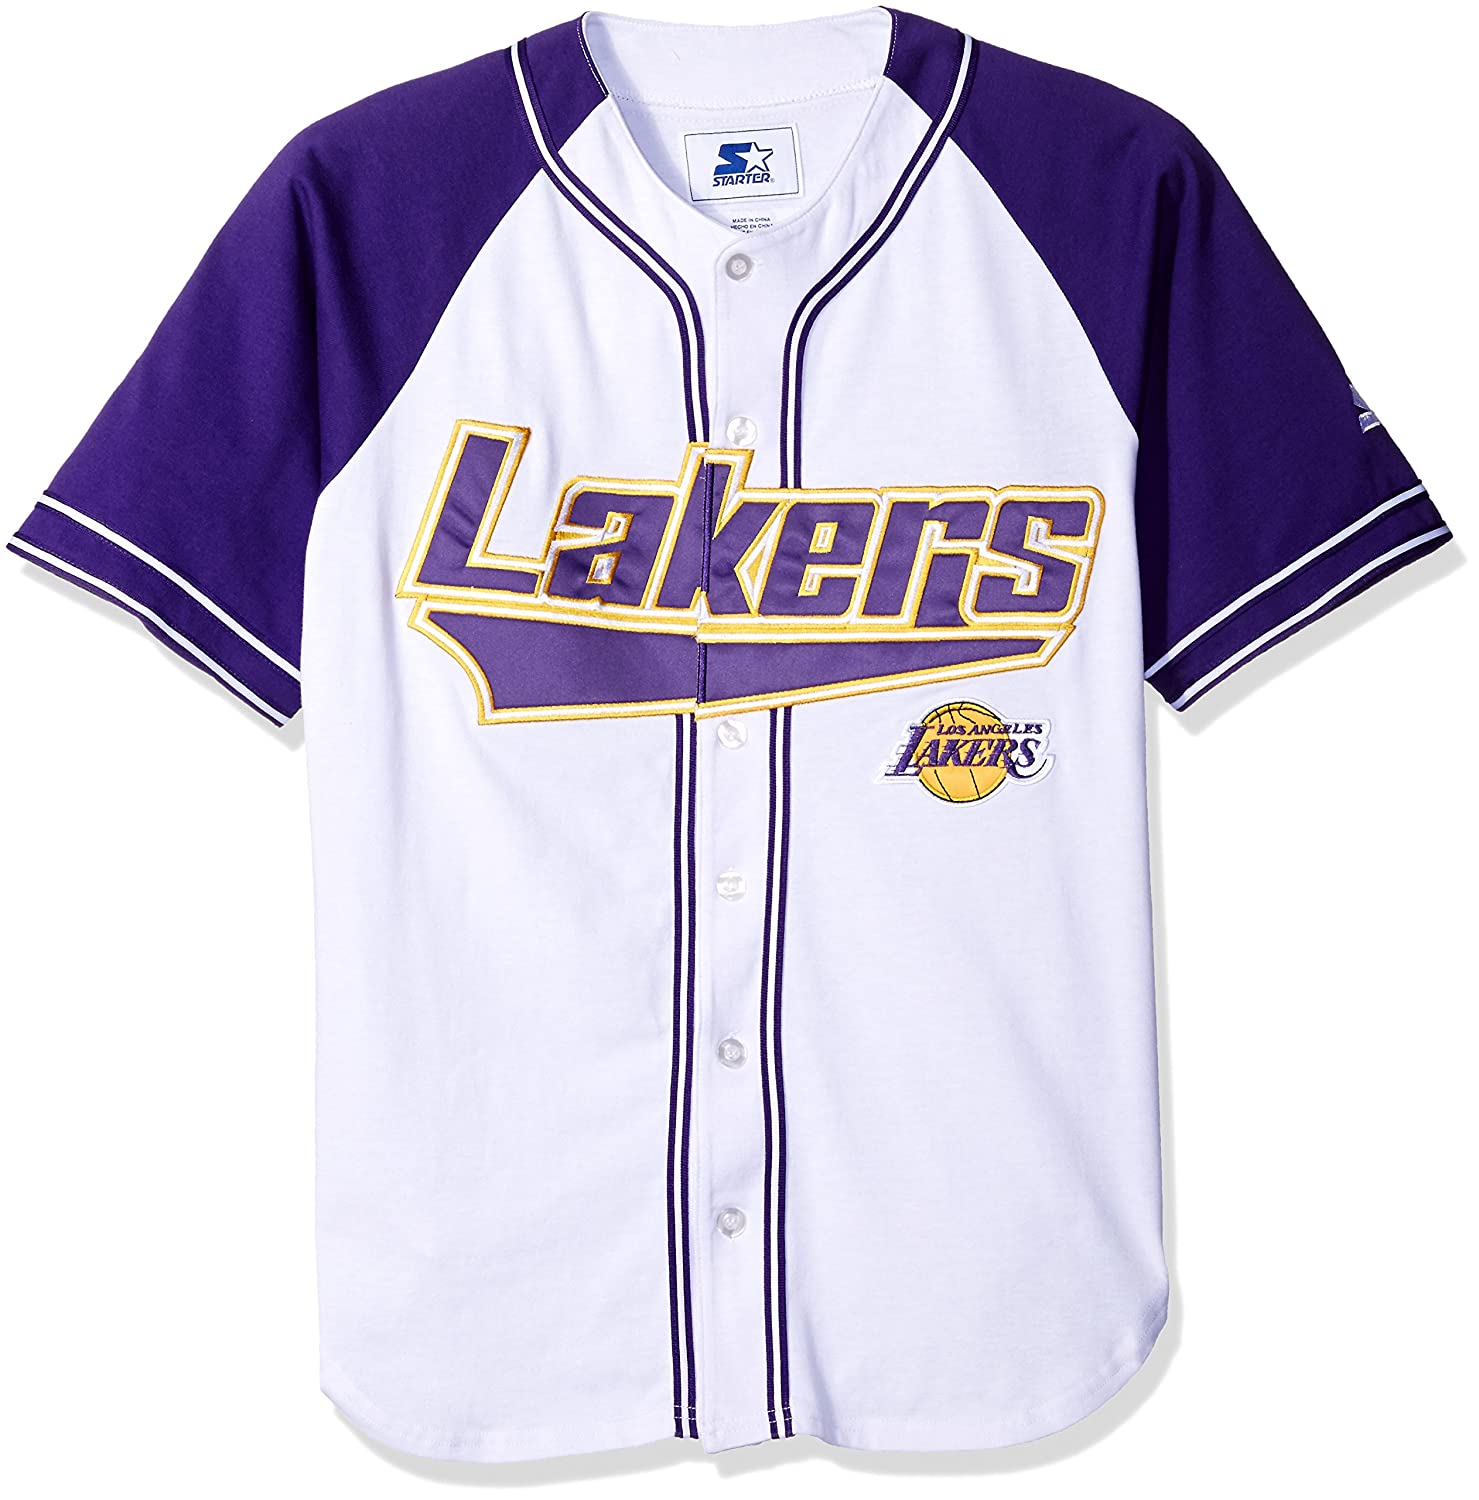 4094b4793 Amazon.com   NBA Baseball Inspired Fashion Jersey   Sports   Outdoors